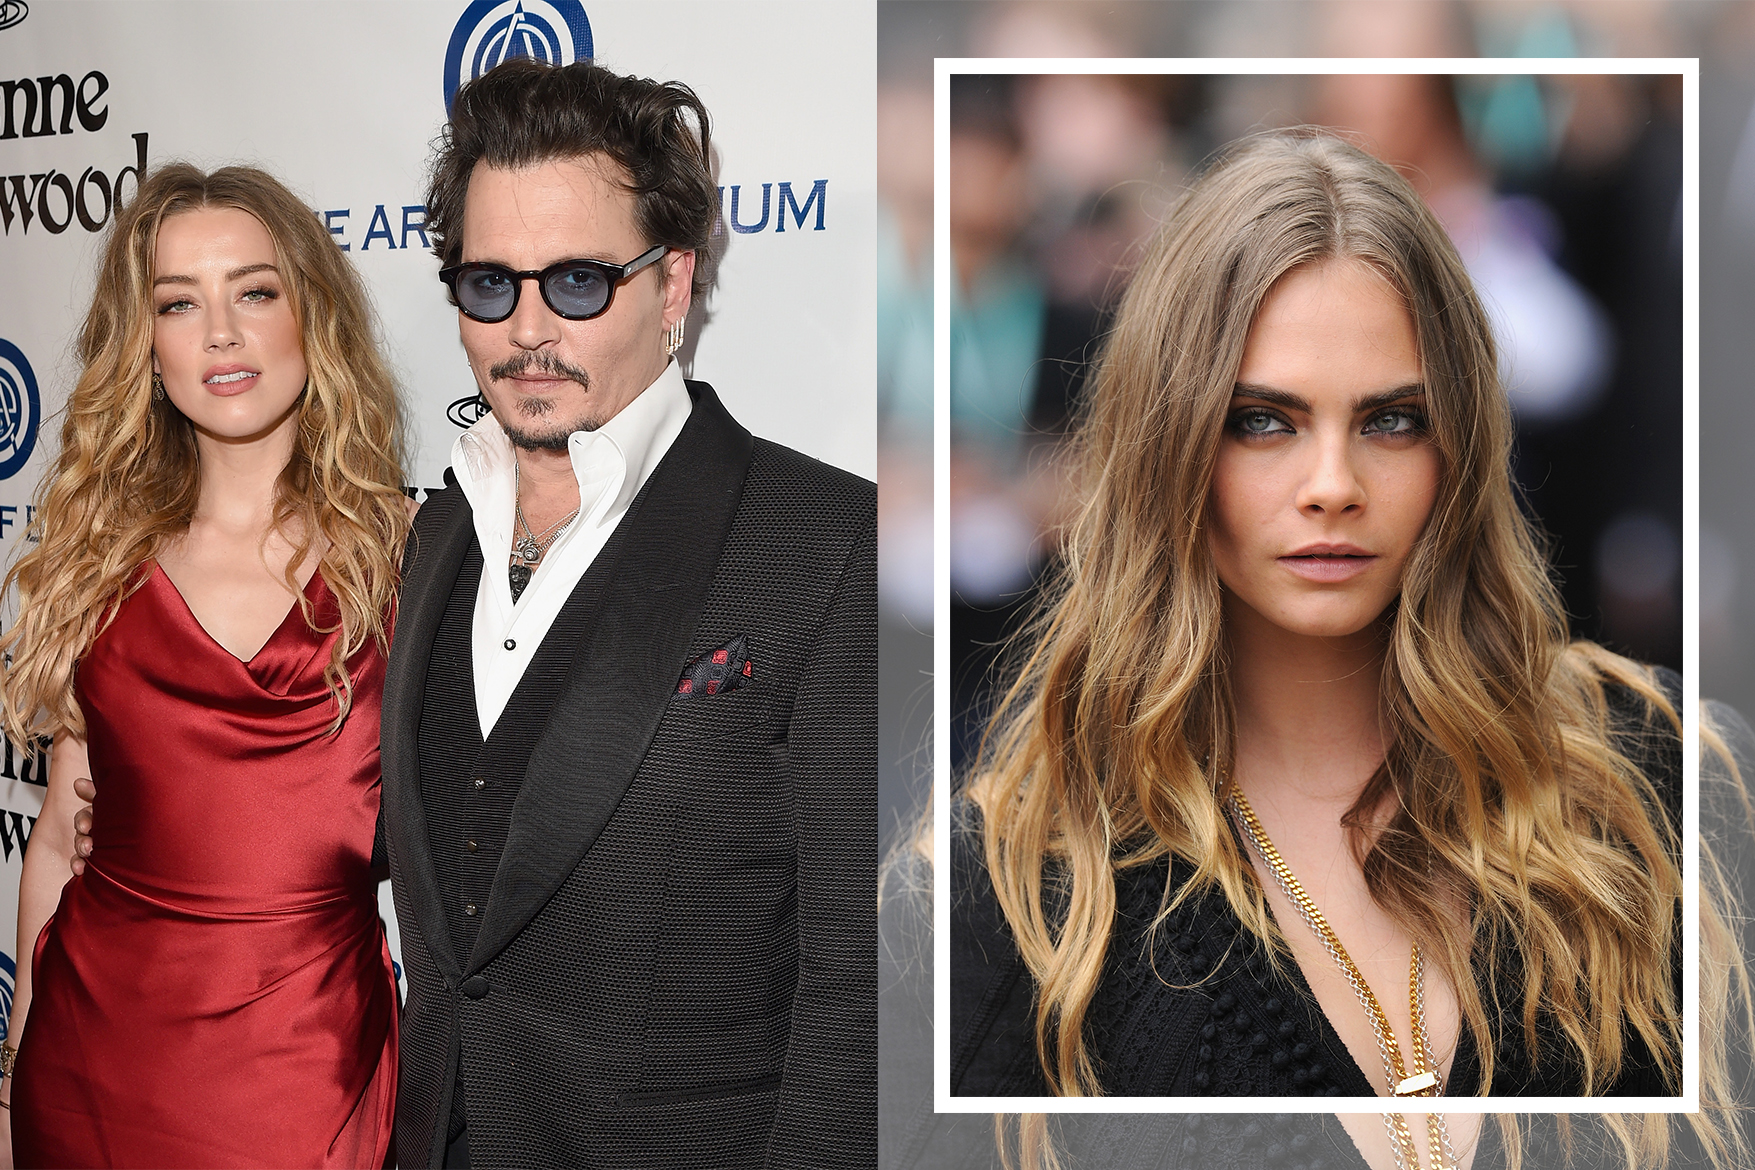 johnny depp divorce amber heard Elon Musk Cara Delevingne three-way